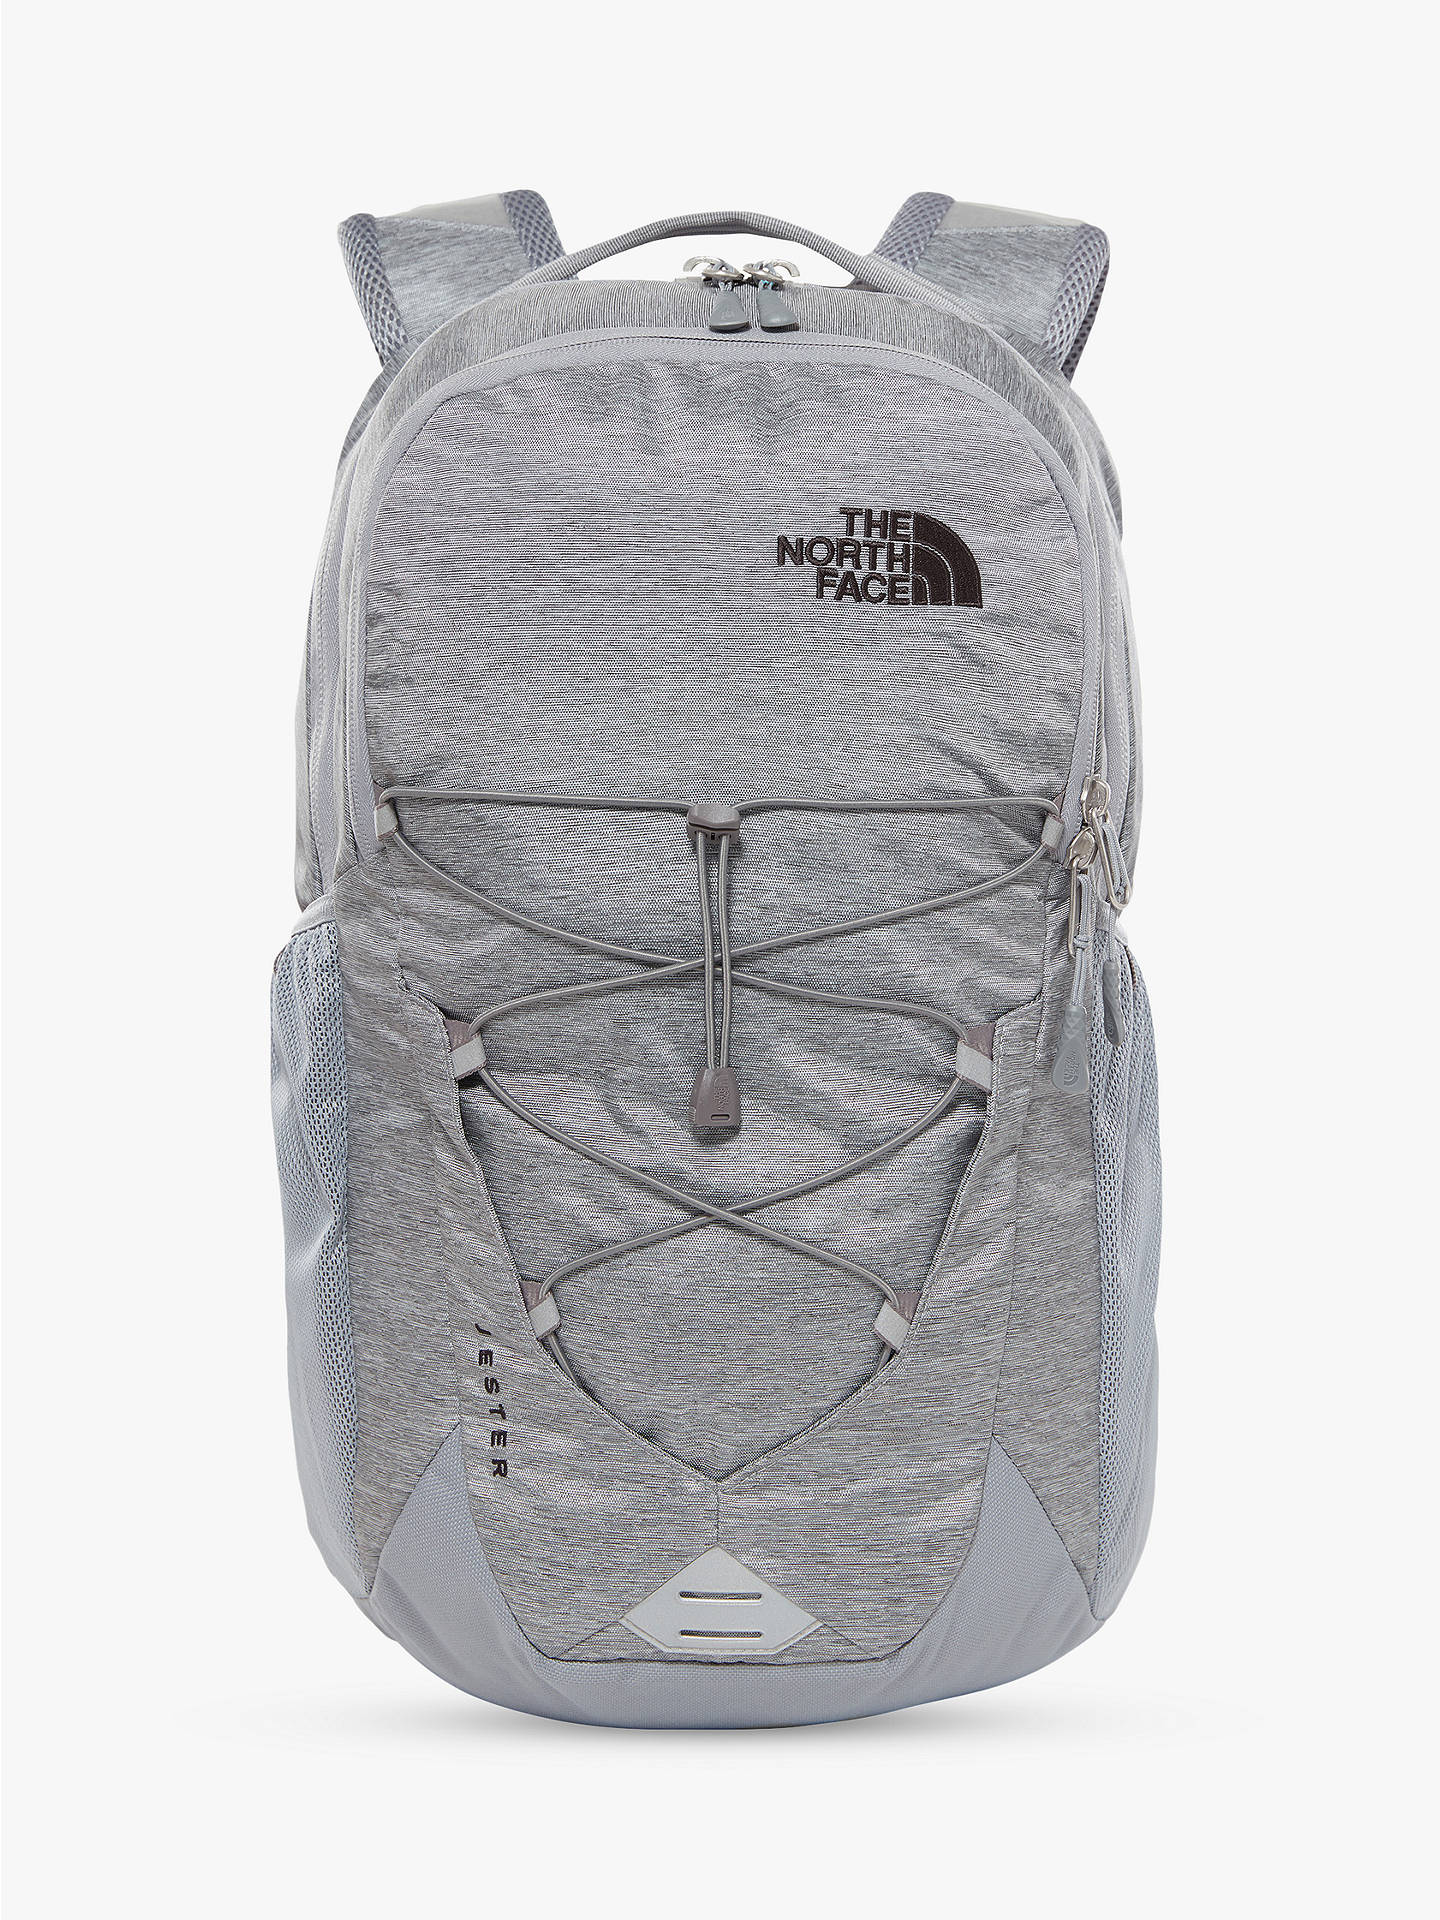 b1219bf9b The North Face Jester Backpack, Grey